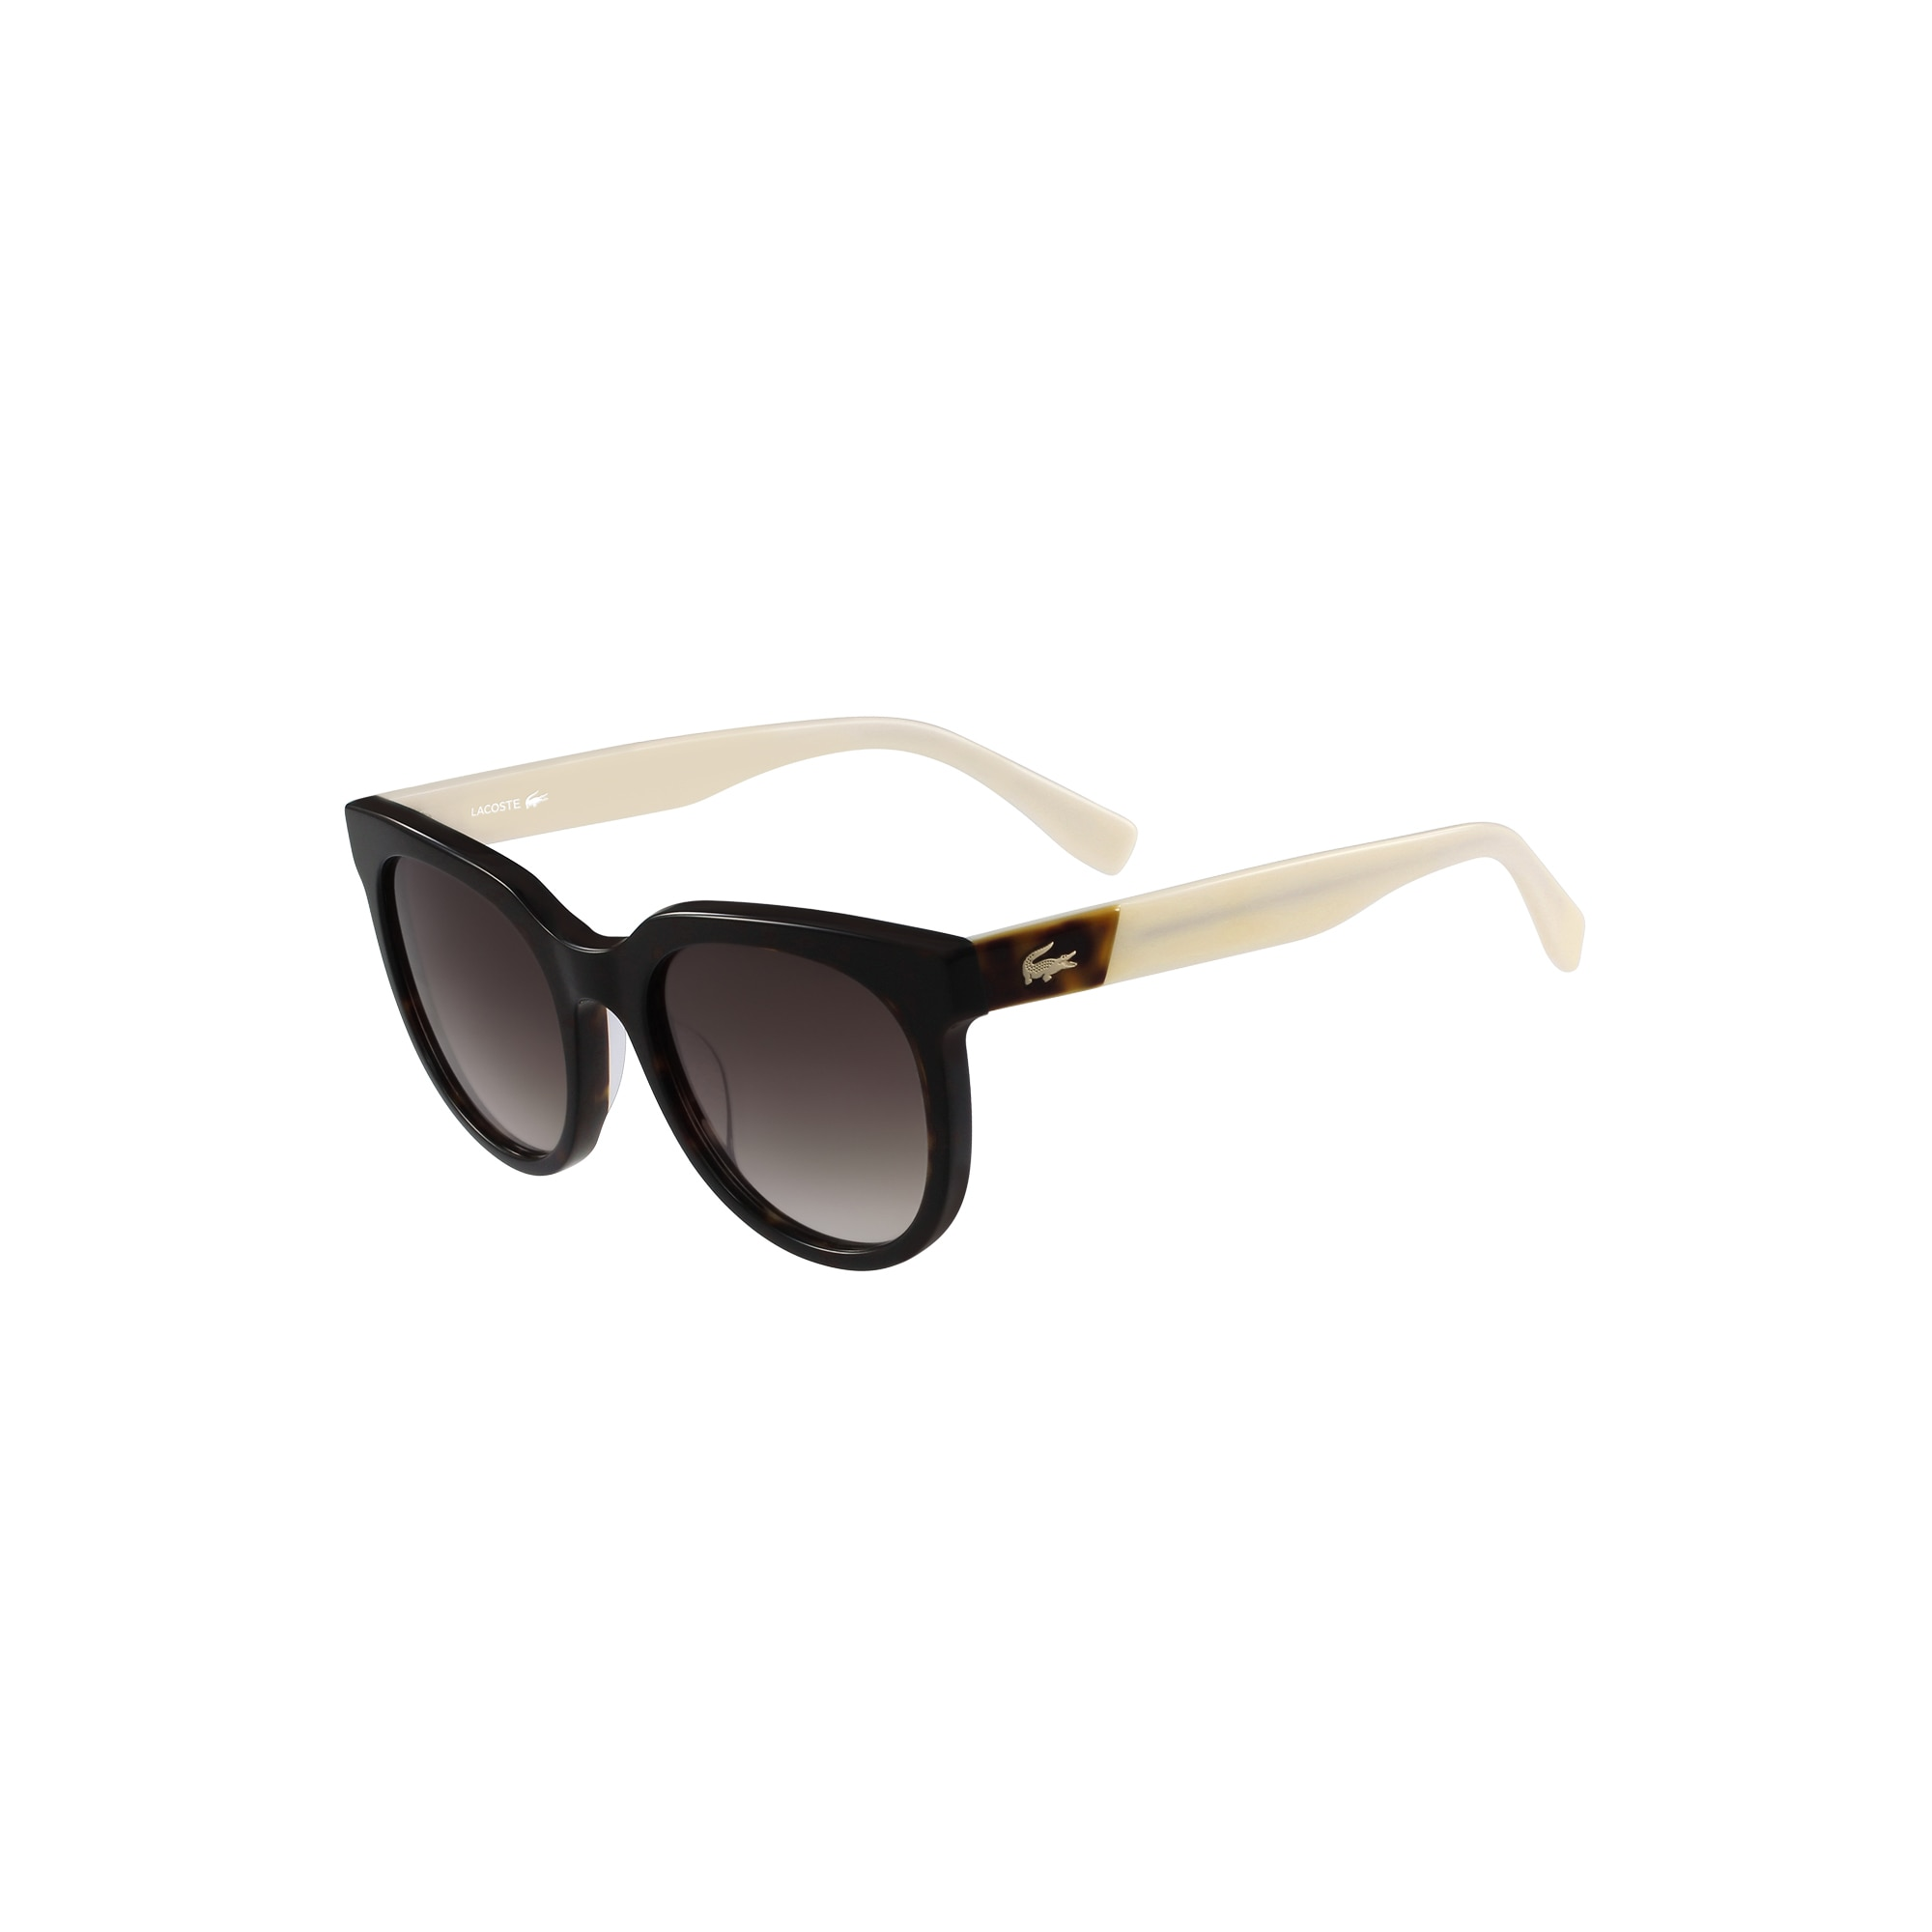 7b7cadf66f5 Women s Vintage Inspired Square Sunglasses